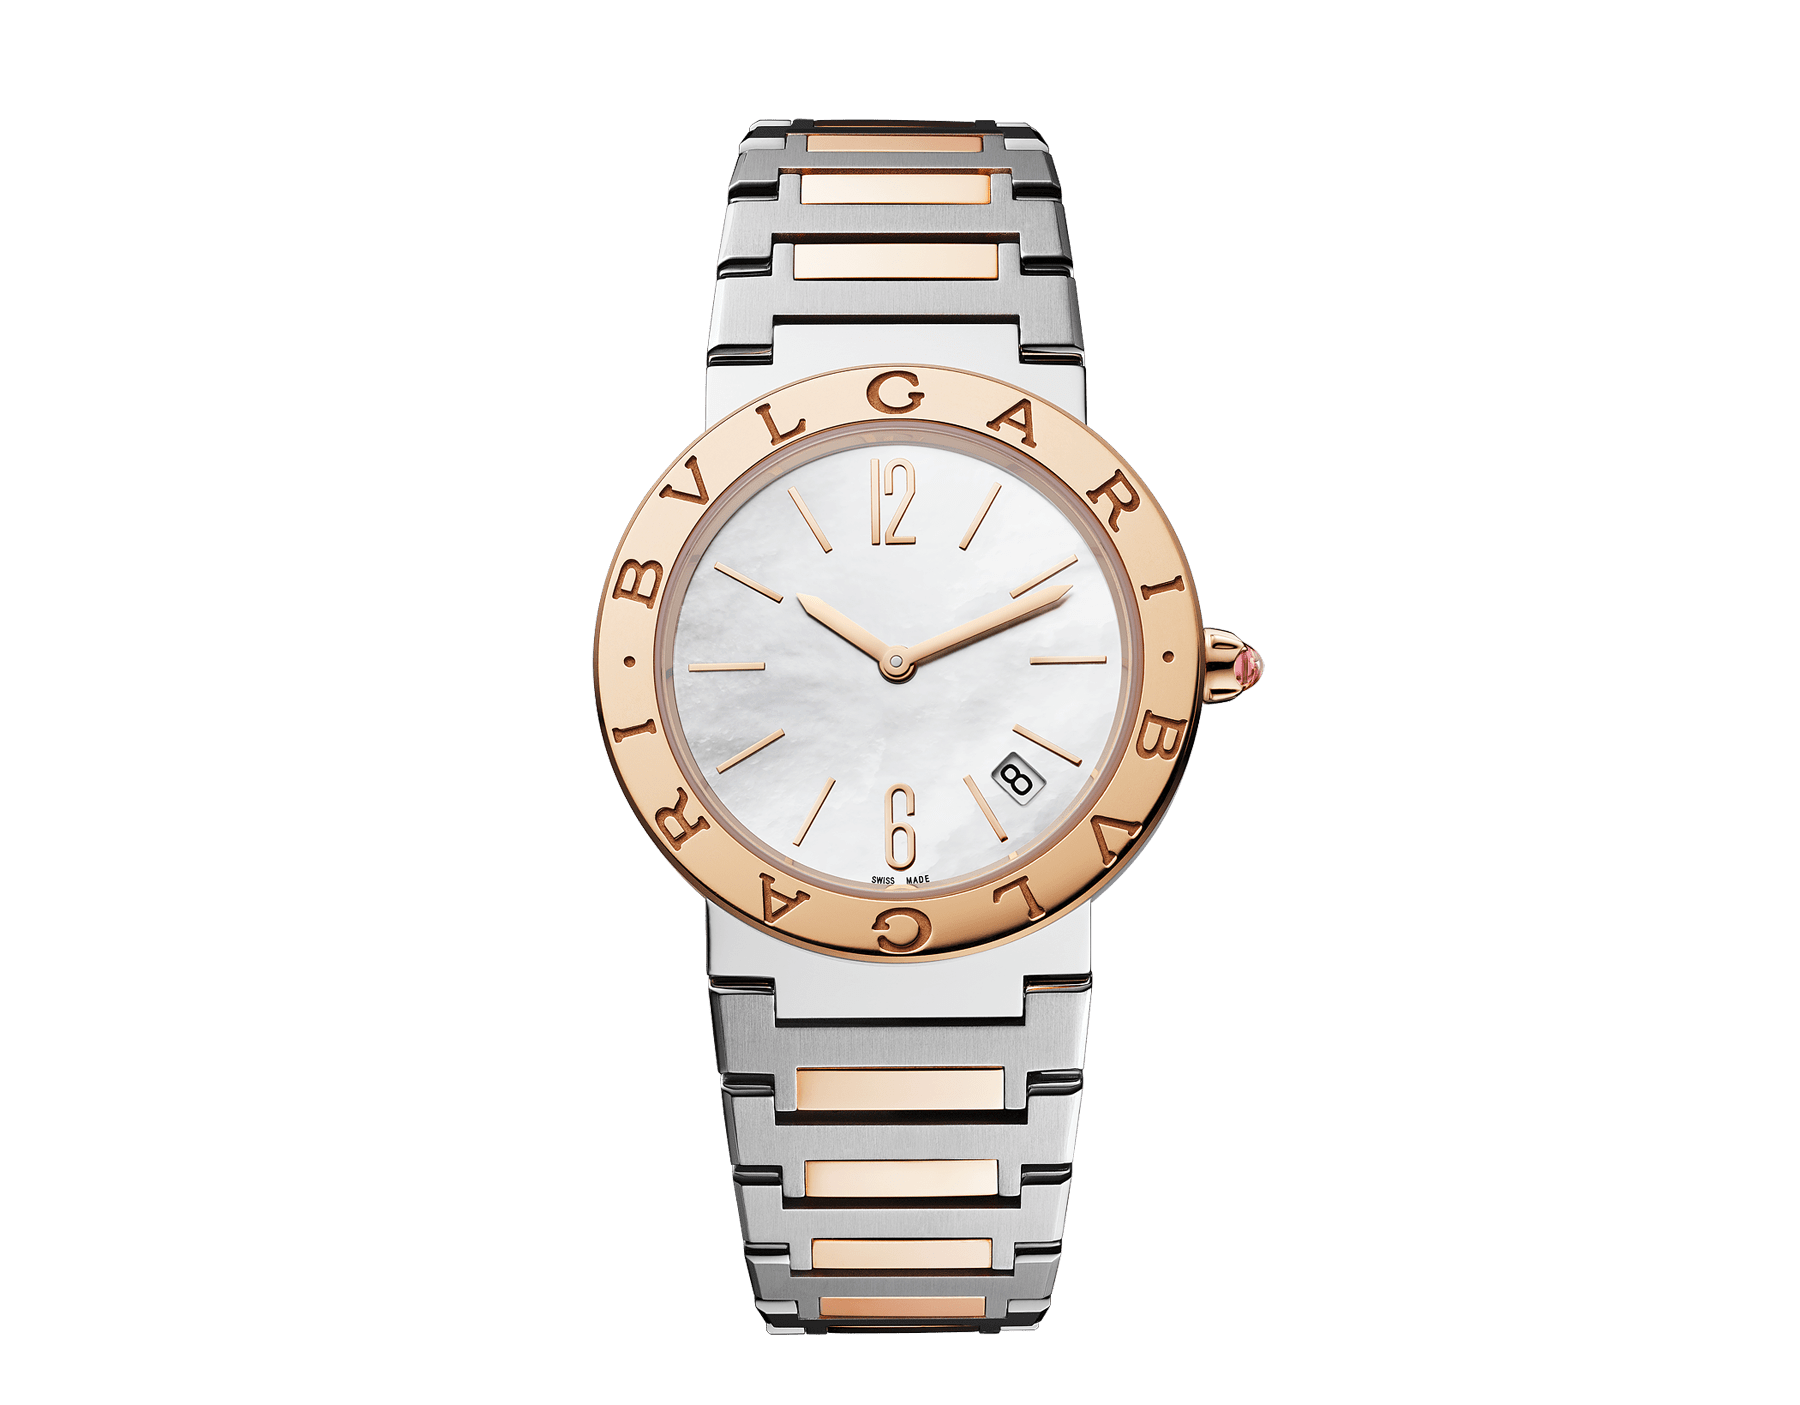 BVLGARI BVLGARI LADY watch with stainless steel case, 18 kt rose gold bezel engraved with double logo, white mother-of-pearl dial and 18 kt rose gold and stainless steel bracelet 102925 image 1